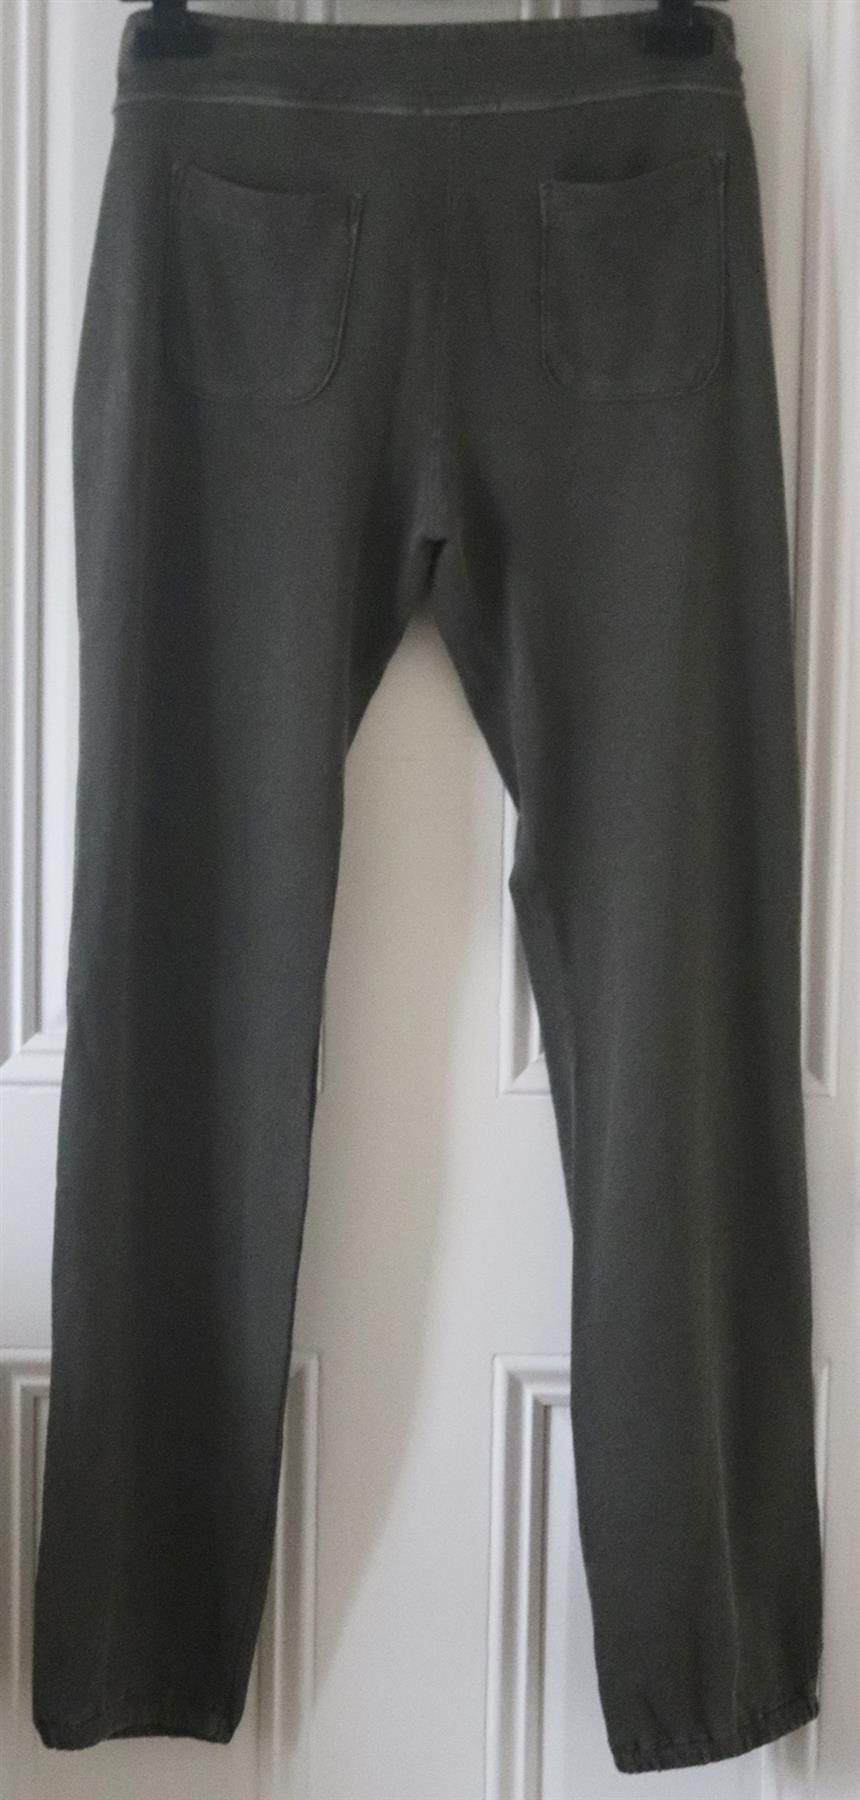 JAMES PERSE GENIE SUPIMA COTTON TERRY TRACK PANTS UK 10